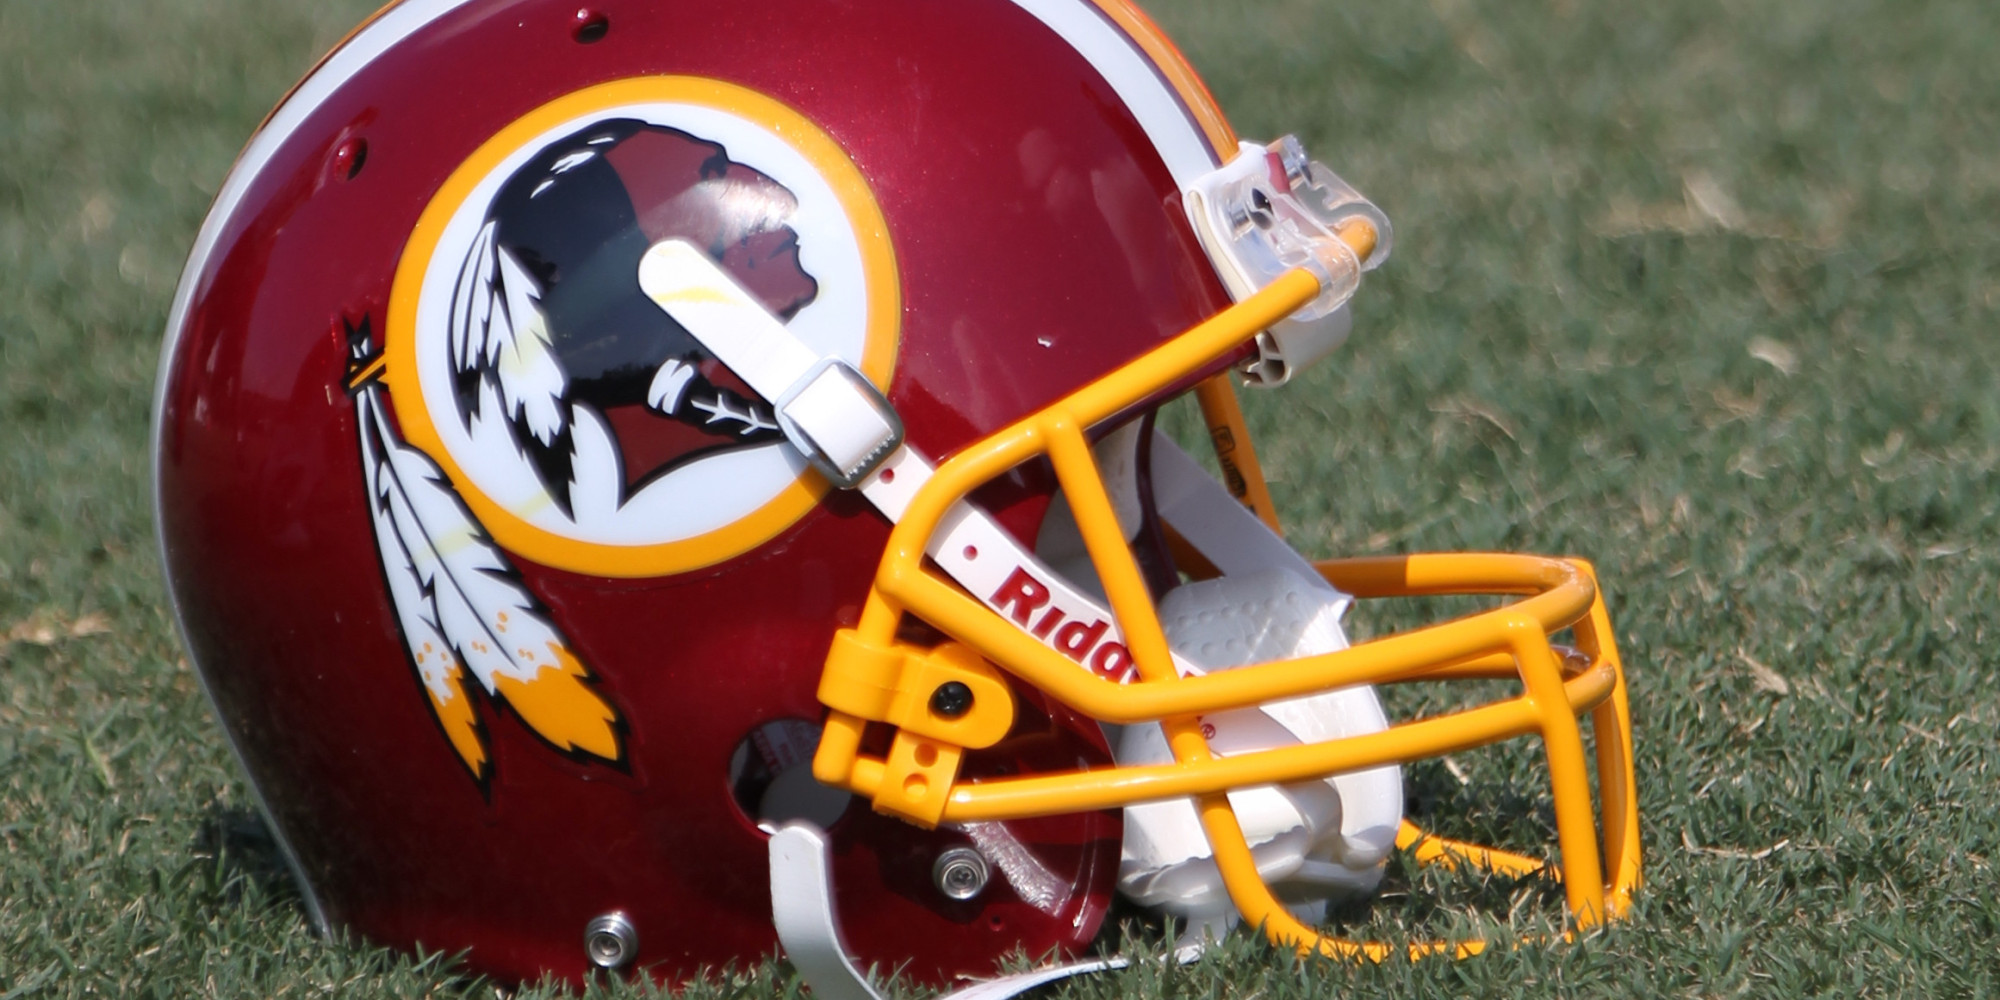 Native American Tribe To Air Anti-Redskins Ad During NBA Finals | HuffPost